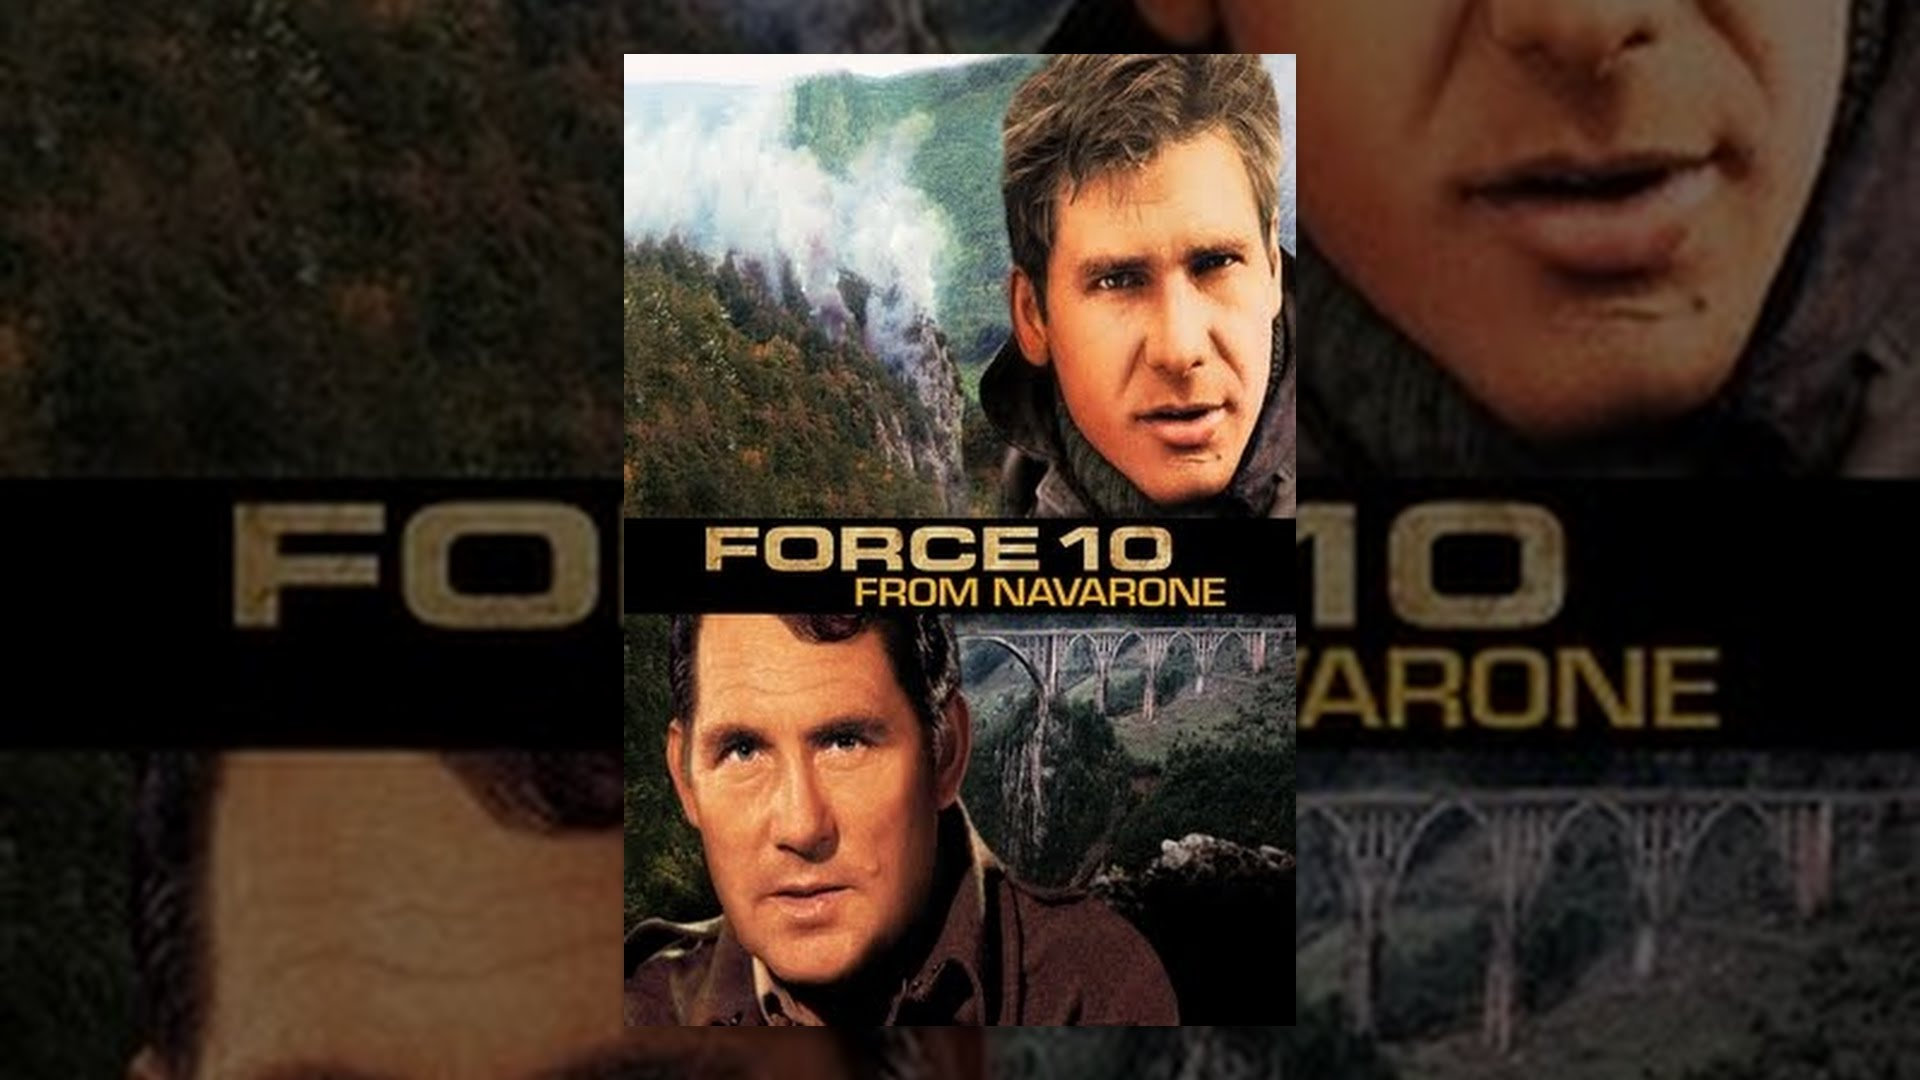 Force 10 from Navarone - YouTube